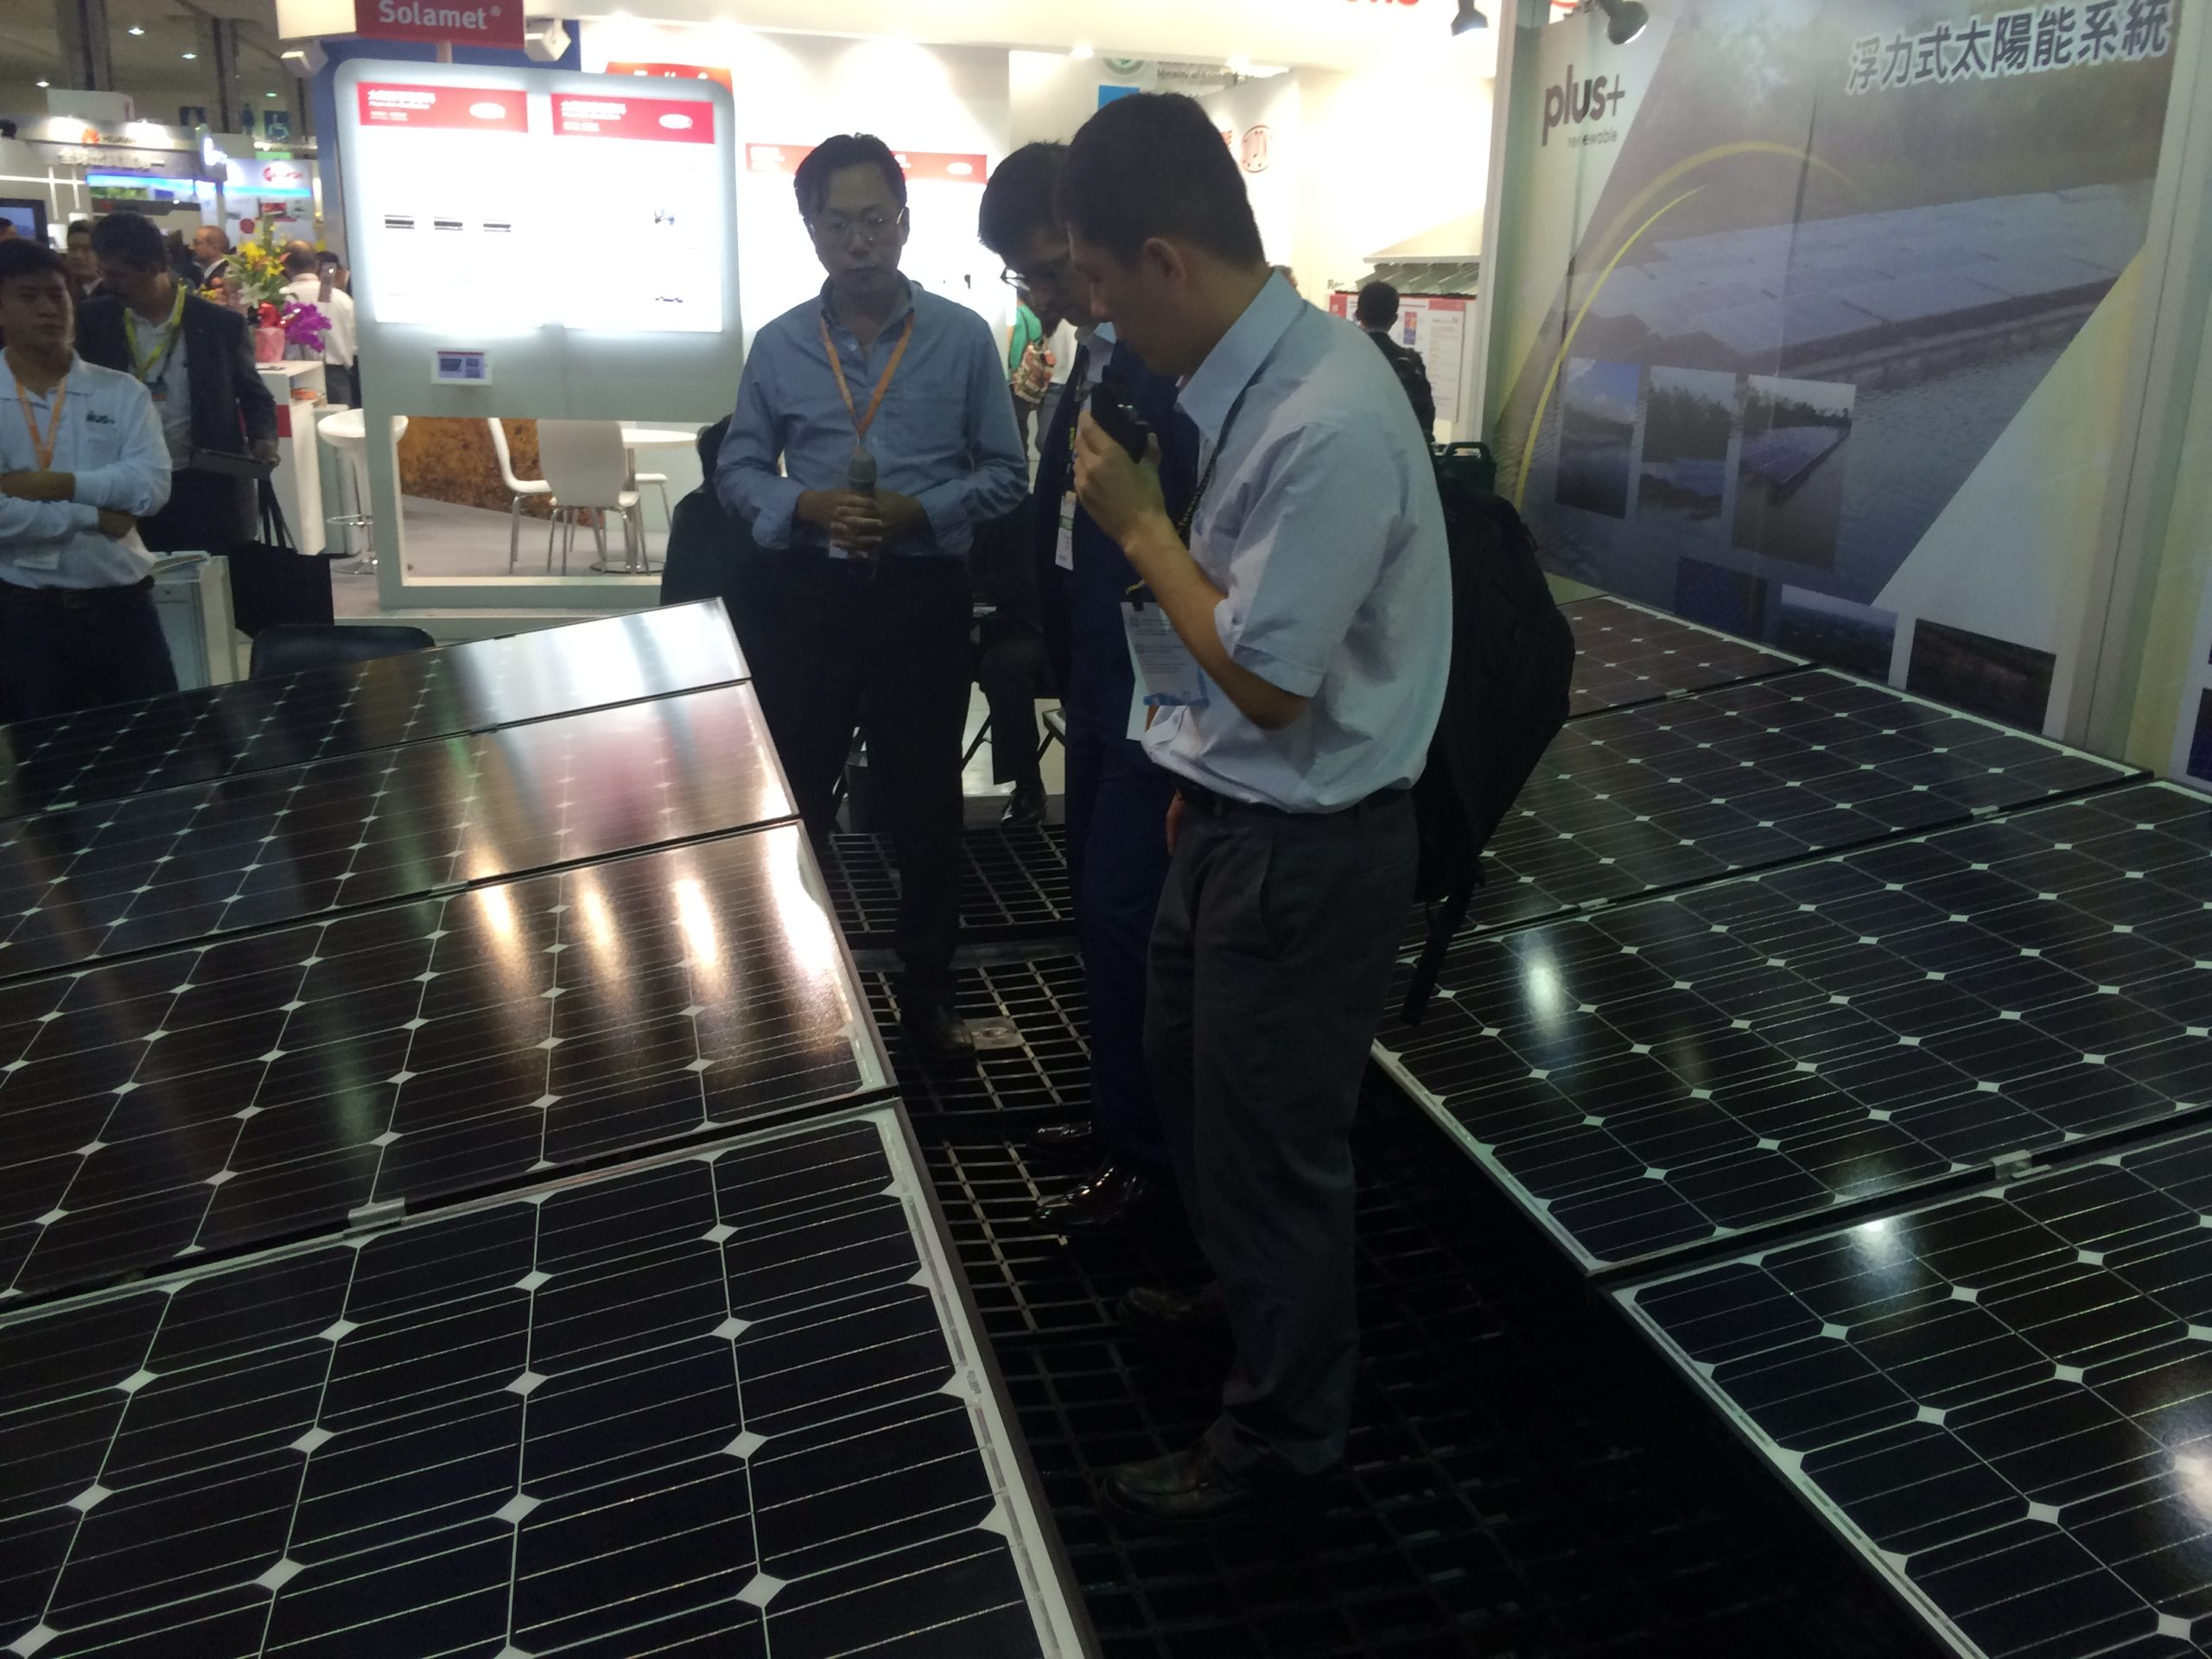 Charles Huang of Plus Renewable explains the potential for floating solar in Taiwan at teh PV Taiwan exhibition in Taipei. Credit: Tom Kenning